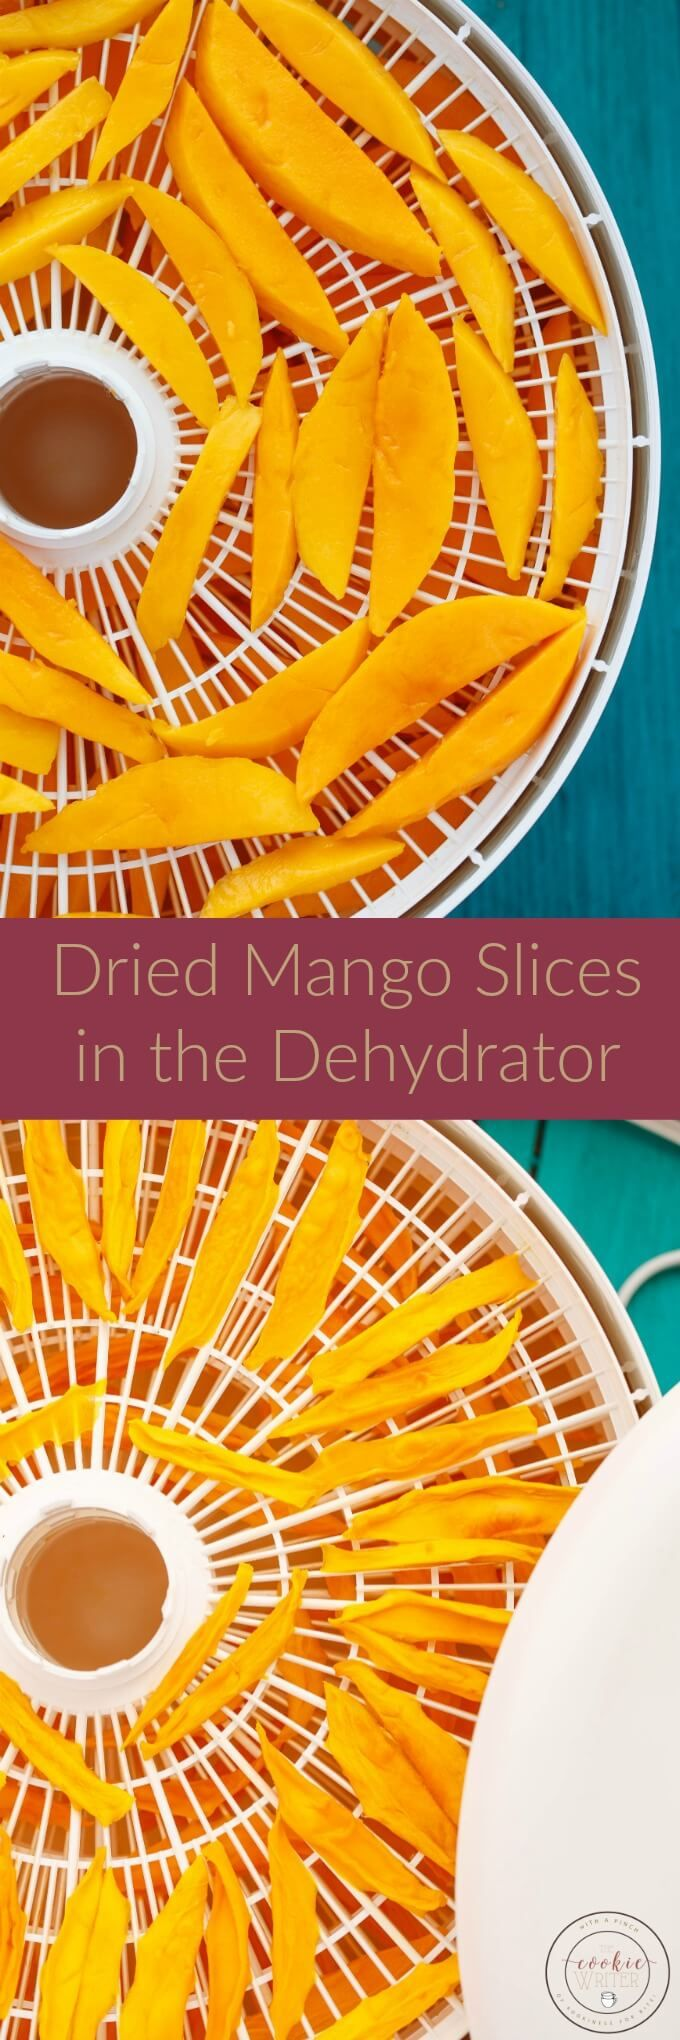 Dried Mango Slices in the Dehydrator | http://thecookiewriter.com | @thecookiewriter.com | #snack | These dried mango slices are way cheaper than the store-bought version and are naturally sweetened with their own sugar!